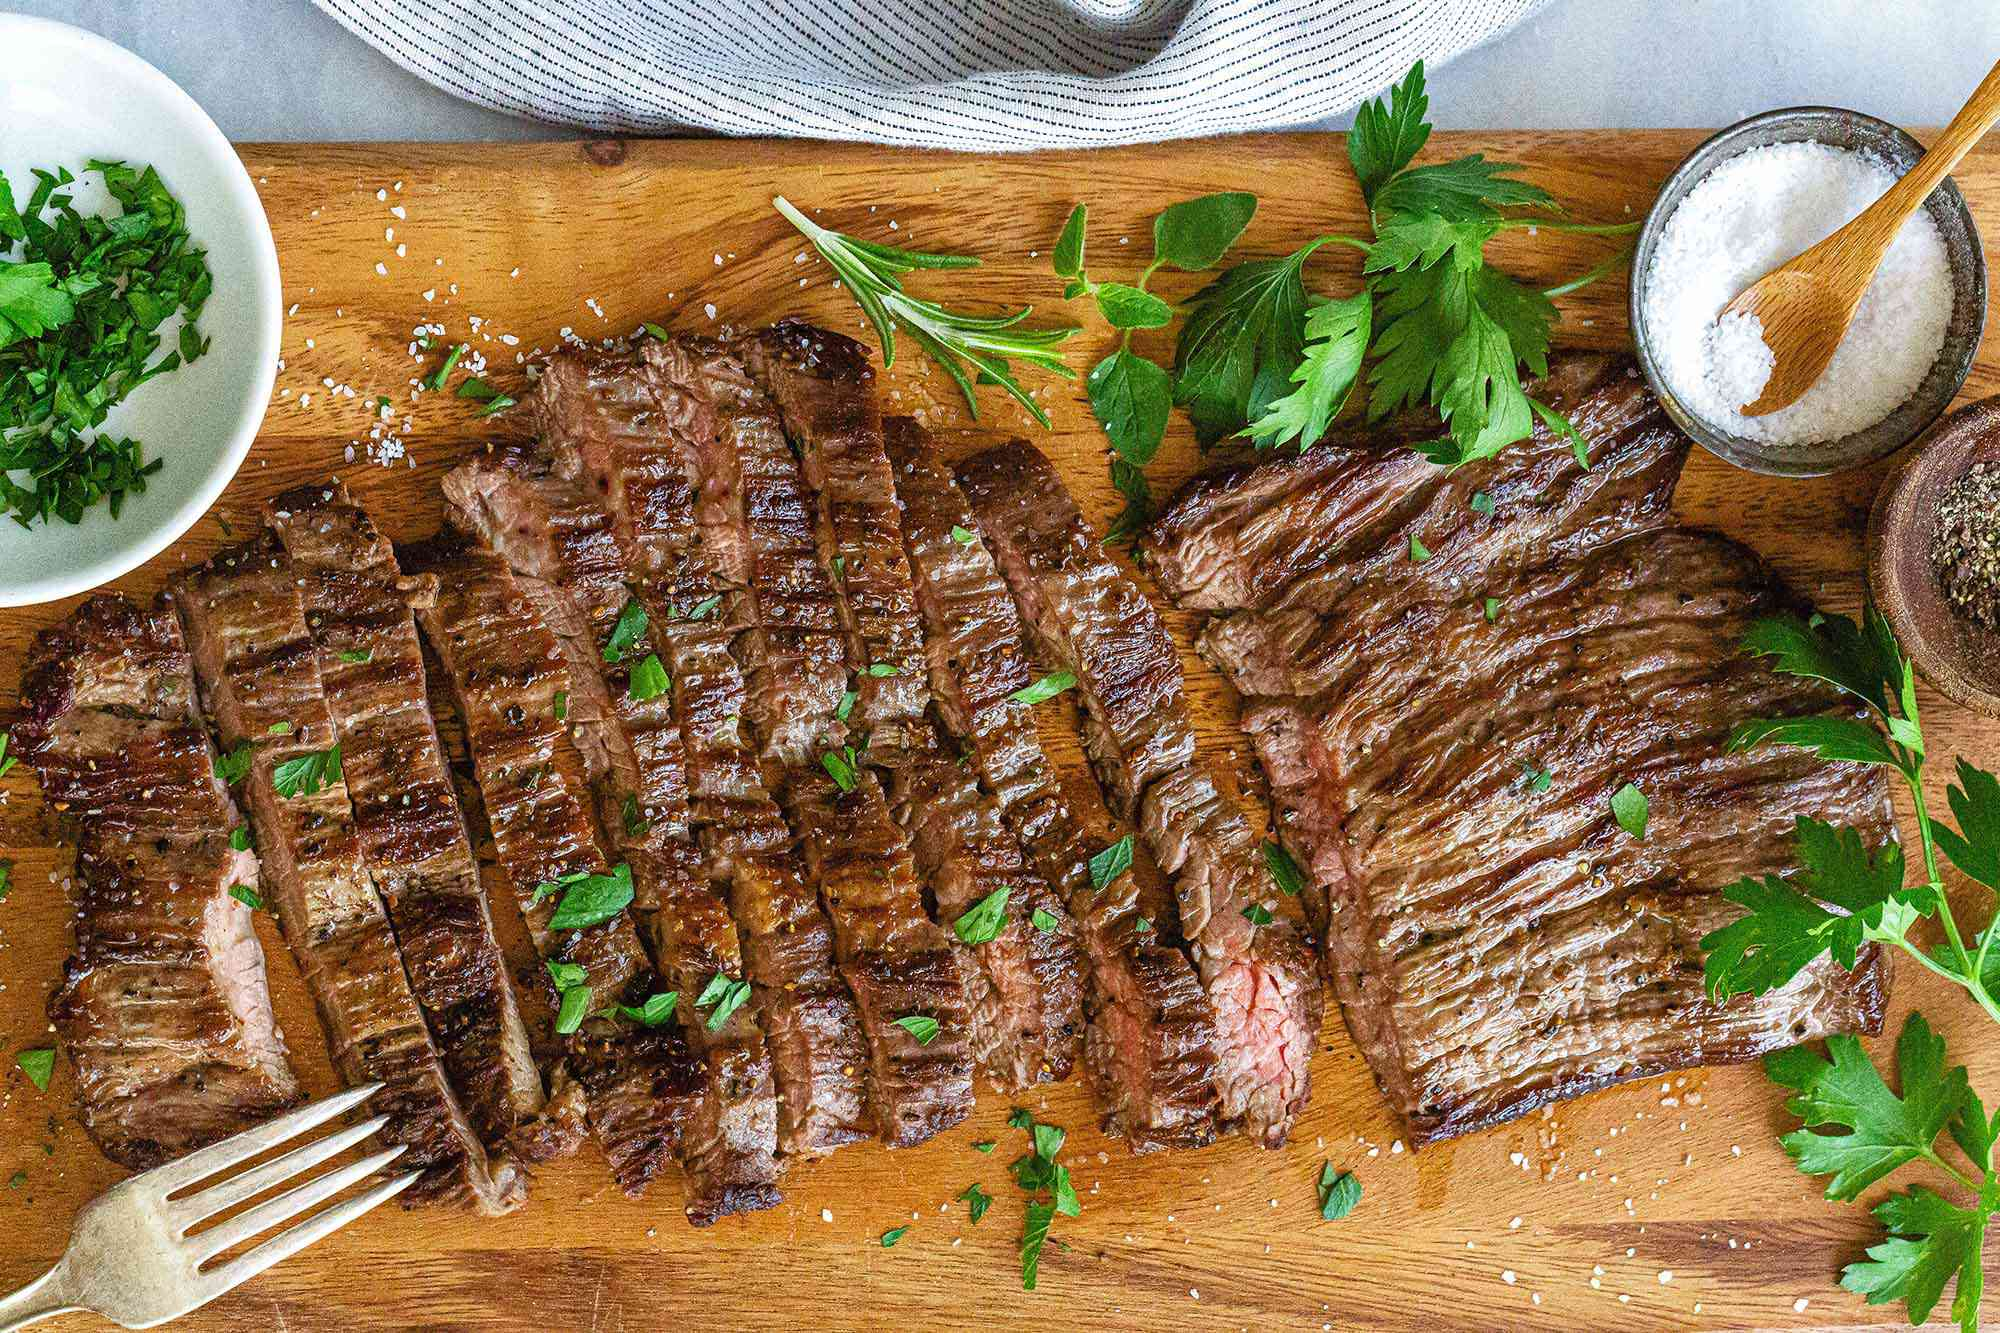 Sliced skirt steak on a wooden cutting board with herbs